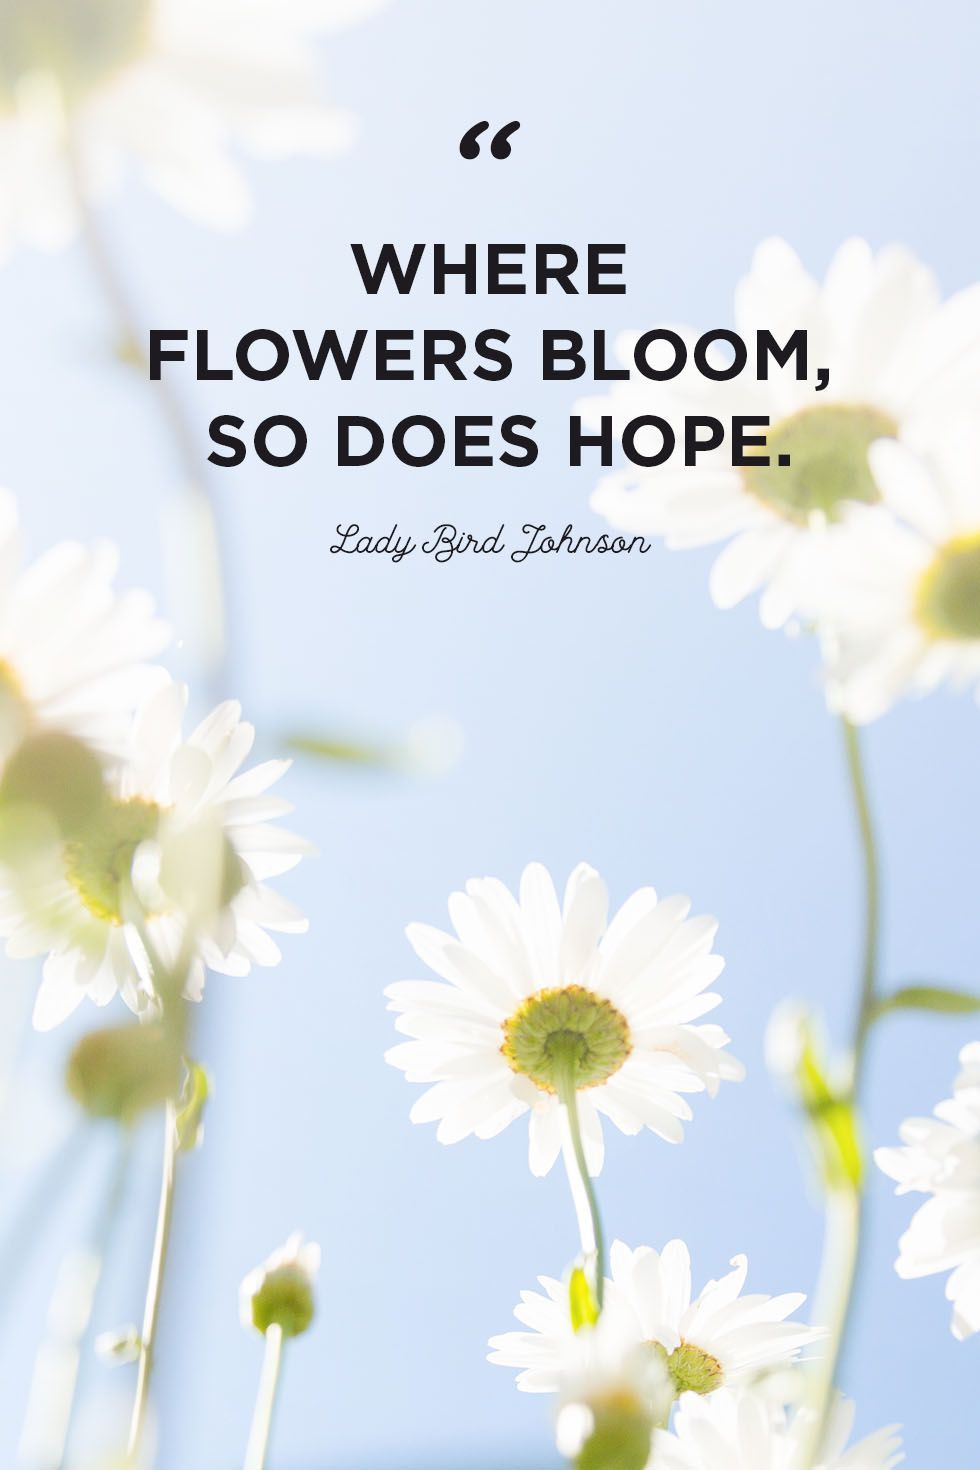 Flower Quotes To Inspire Growth Flower Quotes Inspirational Flower Quotes Bloom Quotes